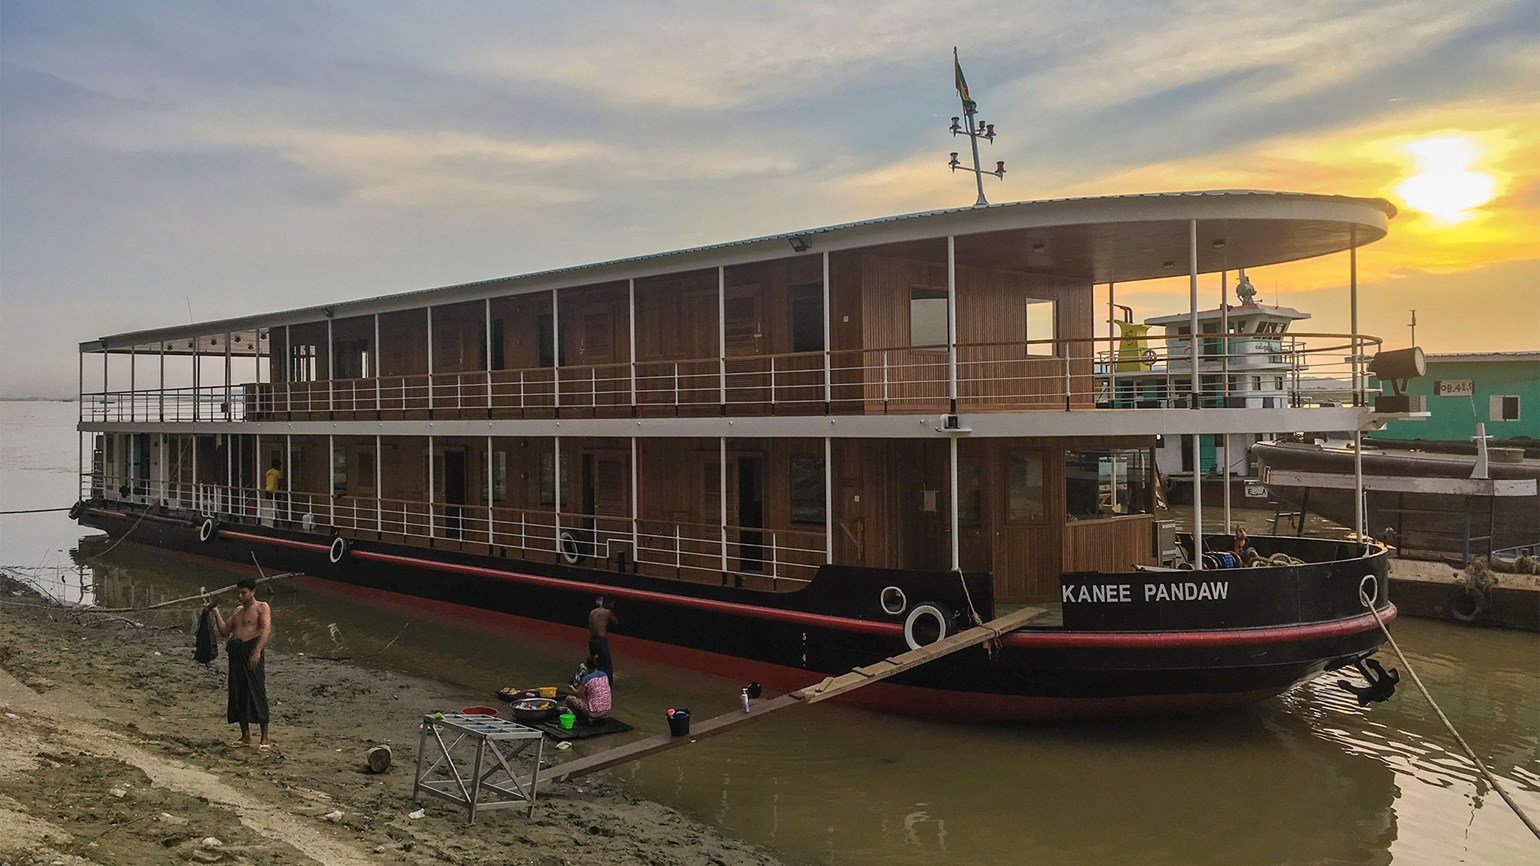 Pandaw halts all its cruises in Myanmar amid unrest